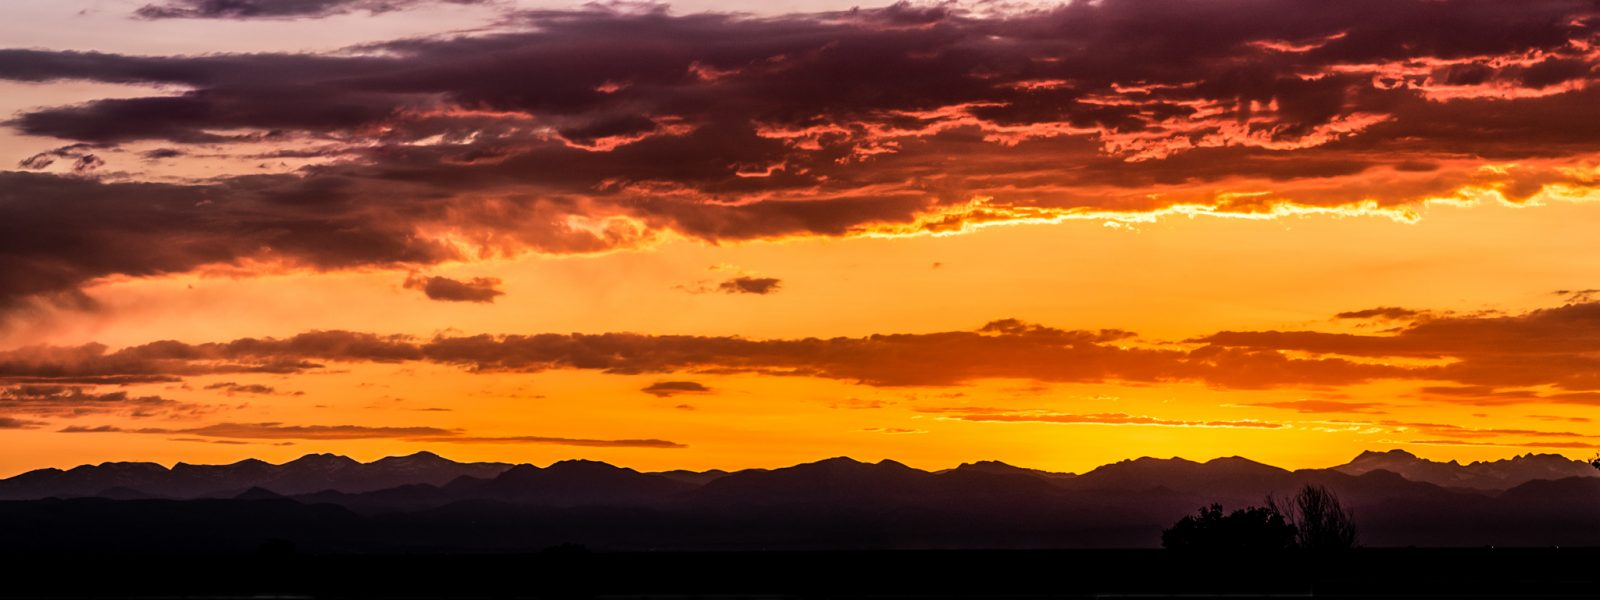 Sunset Pano over the Rockies